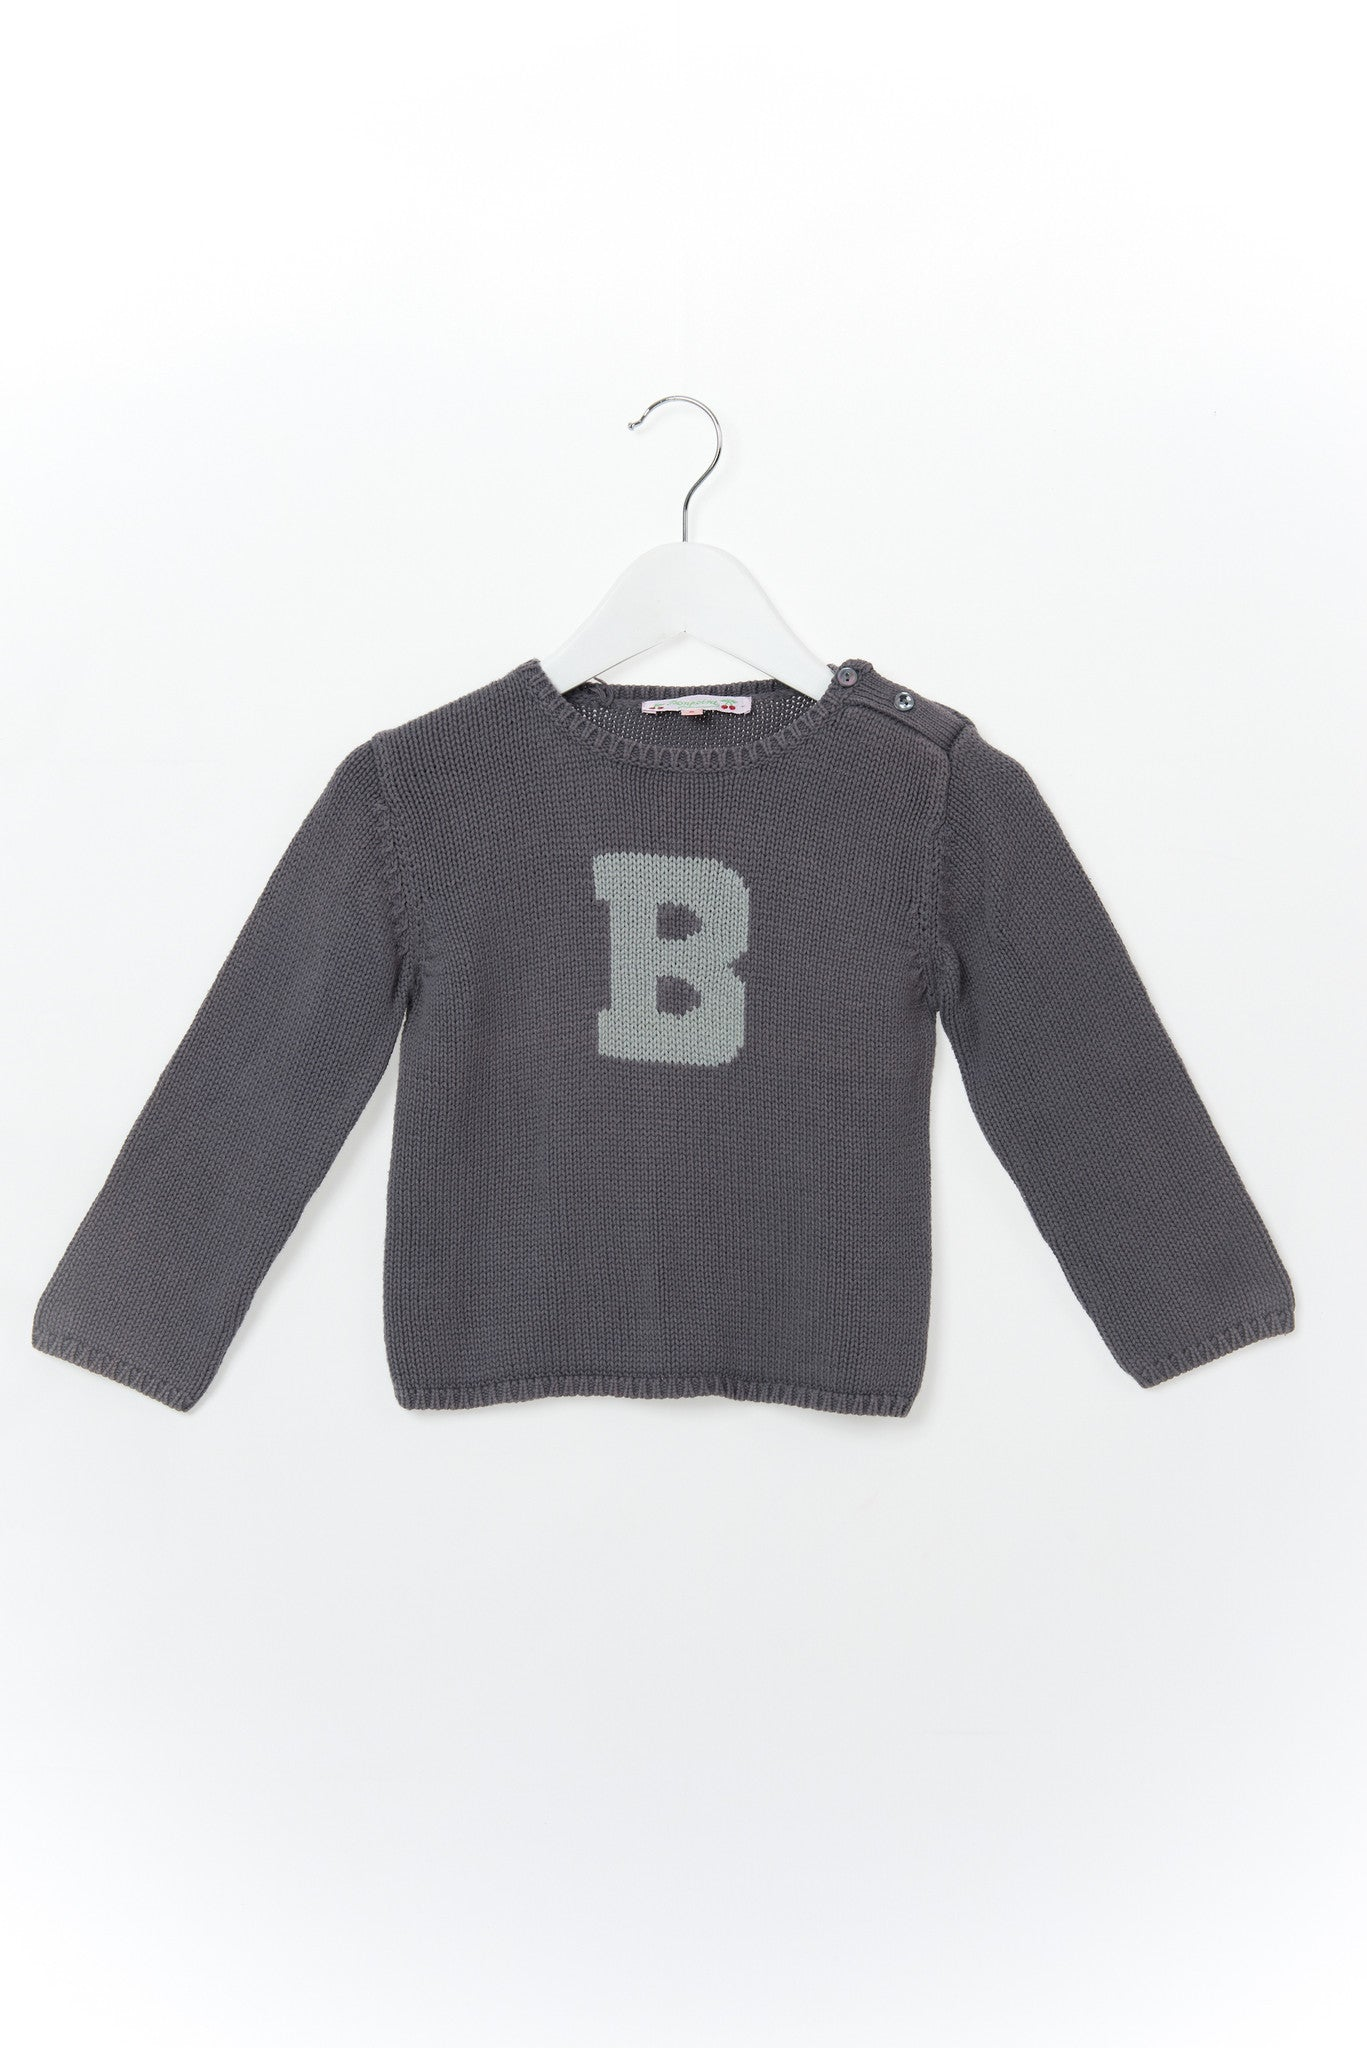 Sweater 2T, Bonpoint at Retykle - Online Baby & Kids Clothing Up to 90% Off